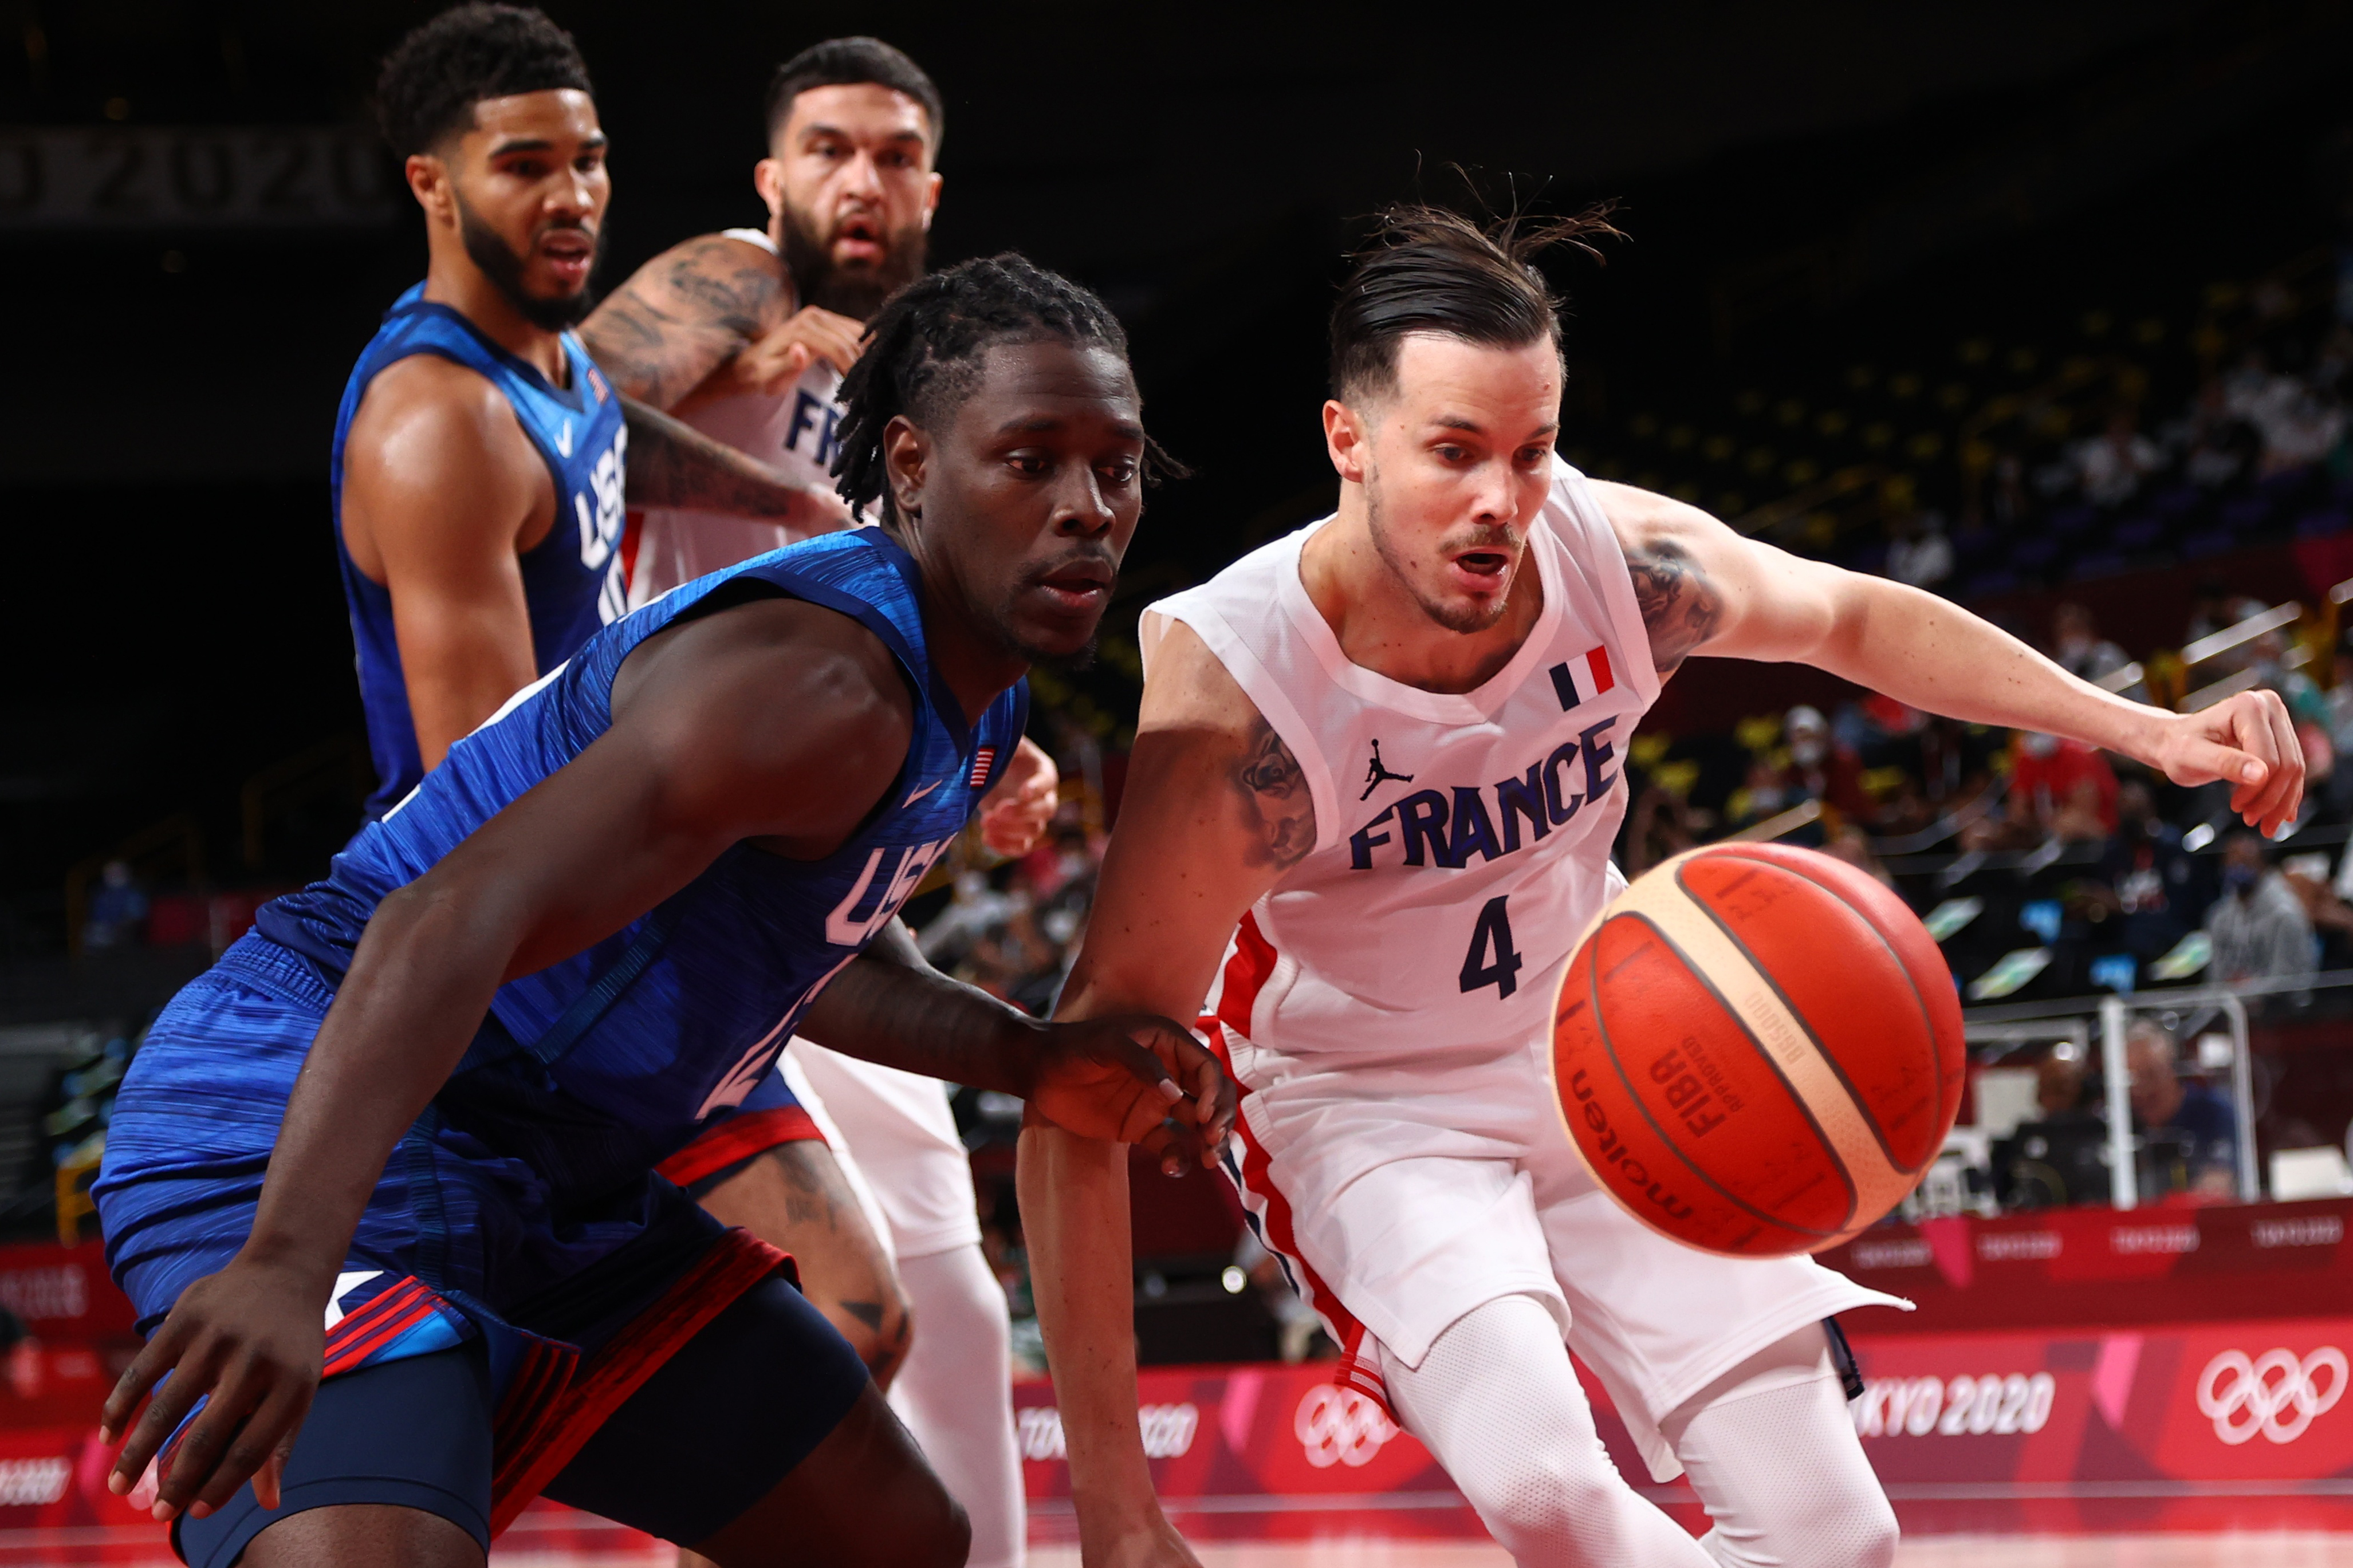 Tokyo 2020 Olympics - Basketball - Men - Group A - France v United States - Saitama Super Arena, Saitama, Japan - July 25, 2021. Jrue Holiday of the United States in action with Thomas Heurtel of France REUTERS/Brian Snyder